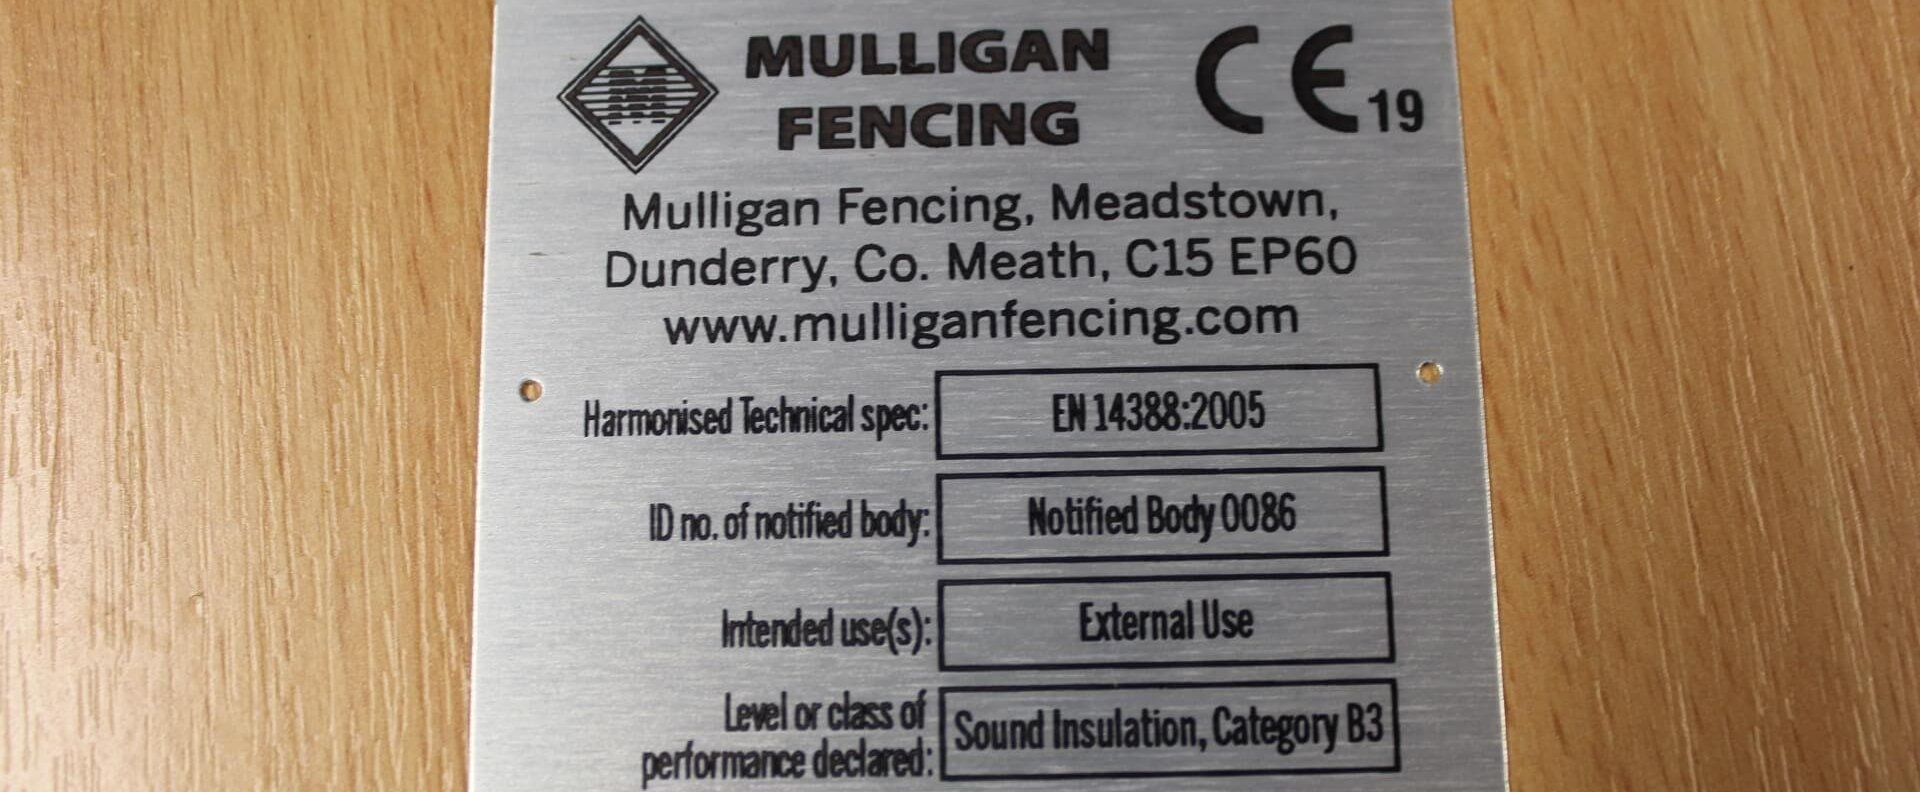 CE Mark Label 14388:2005 Mulligan Fencing Acoustic Noise Barrier